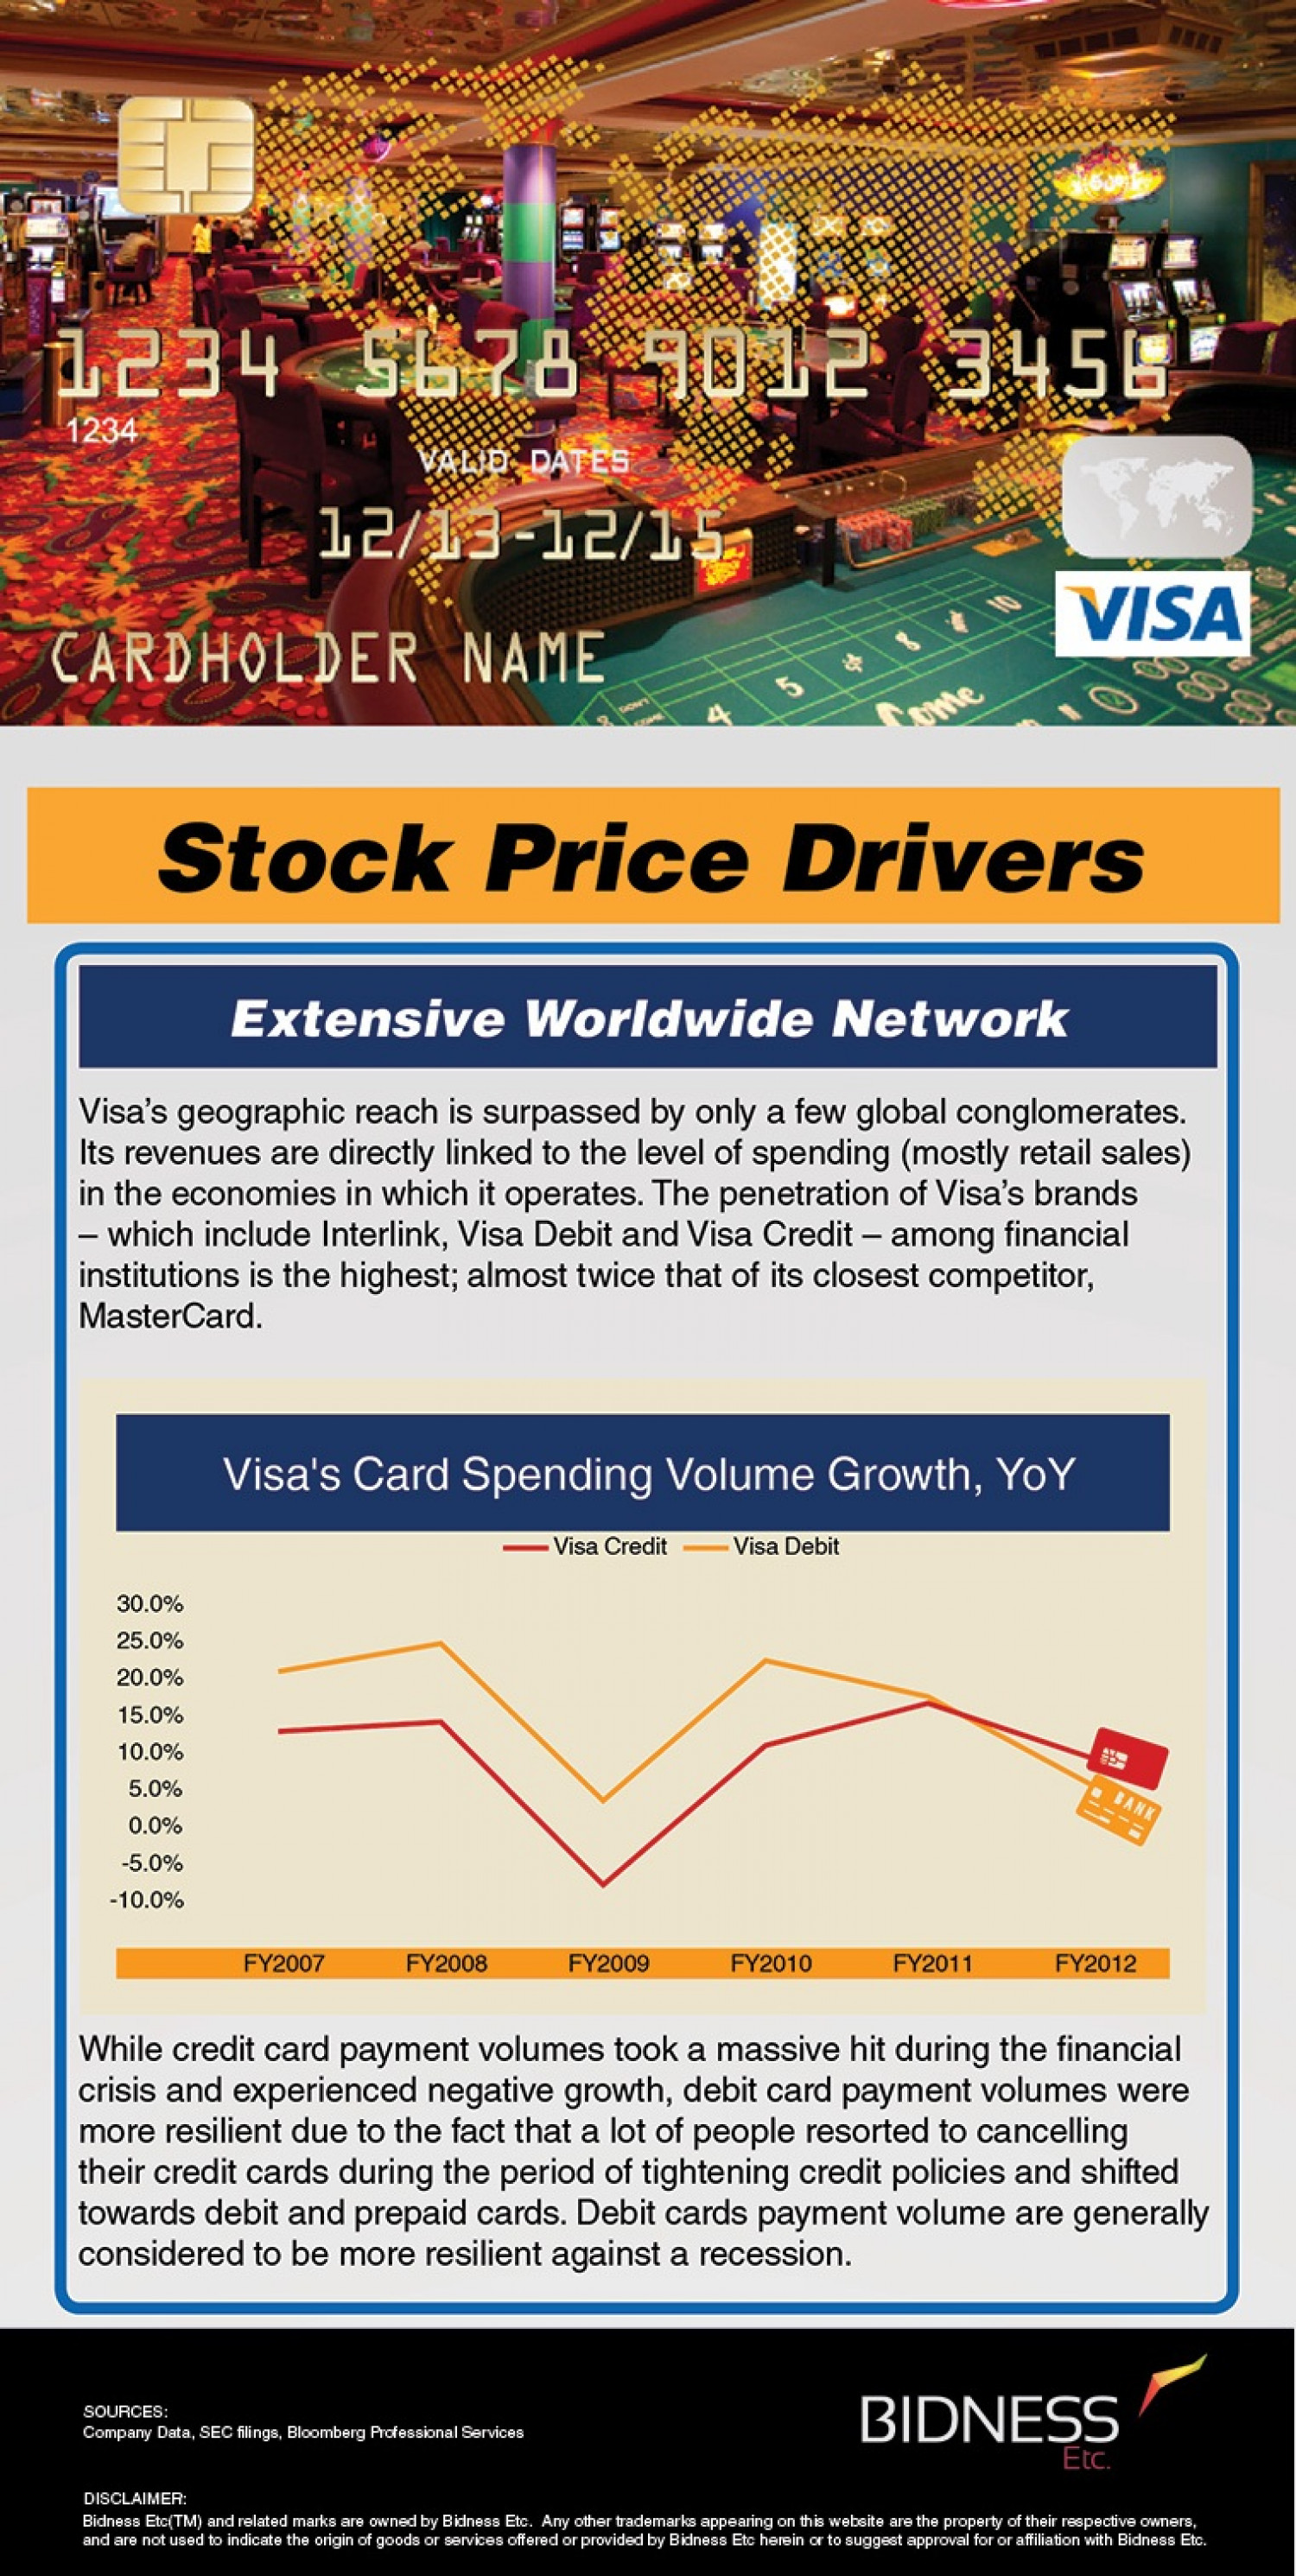 Visa (V) Stock Price Drivers Infographic